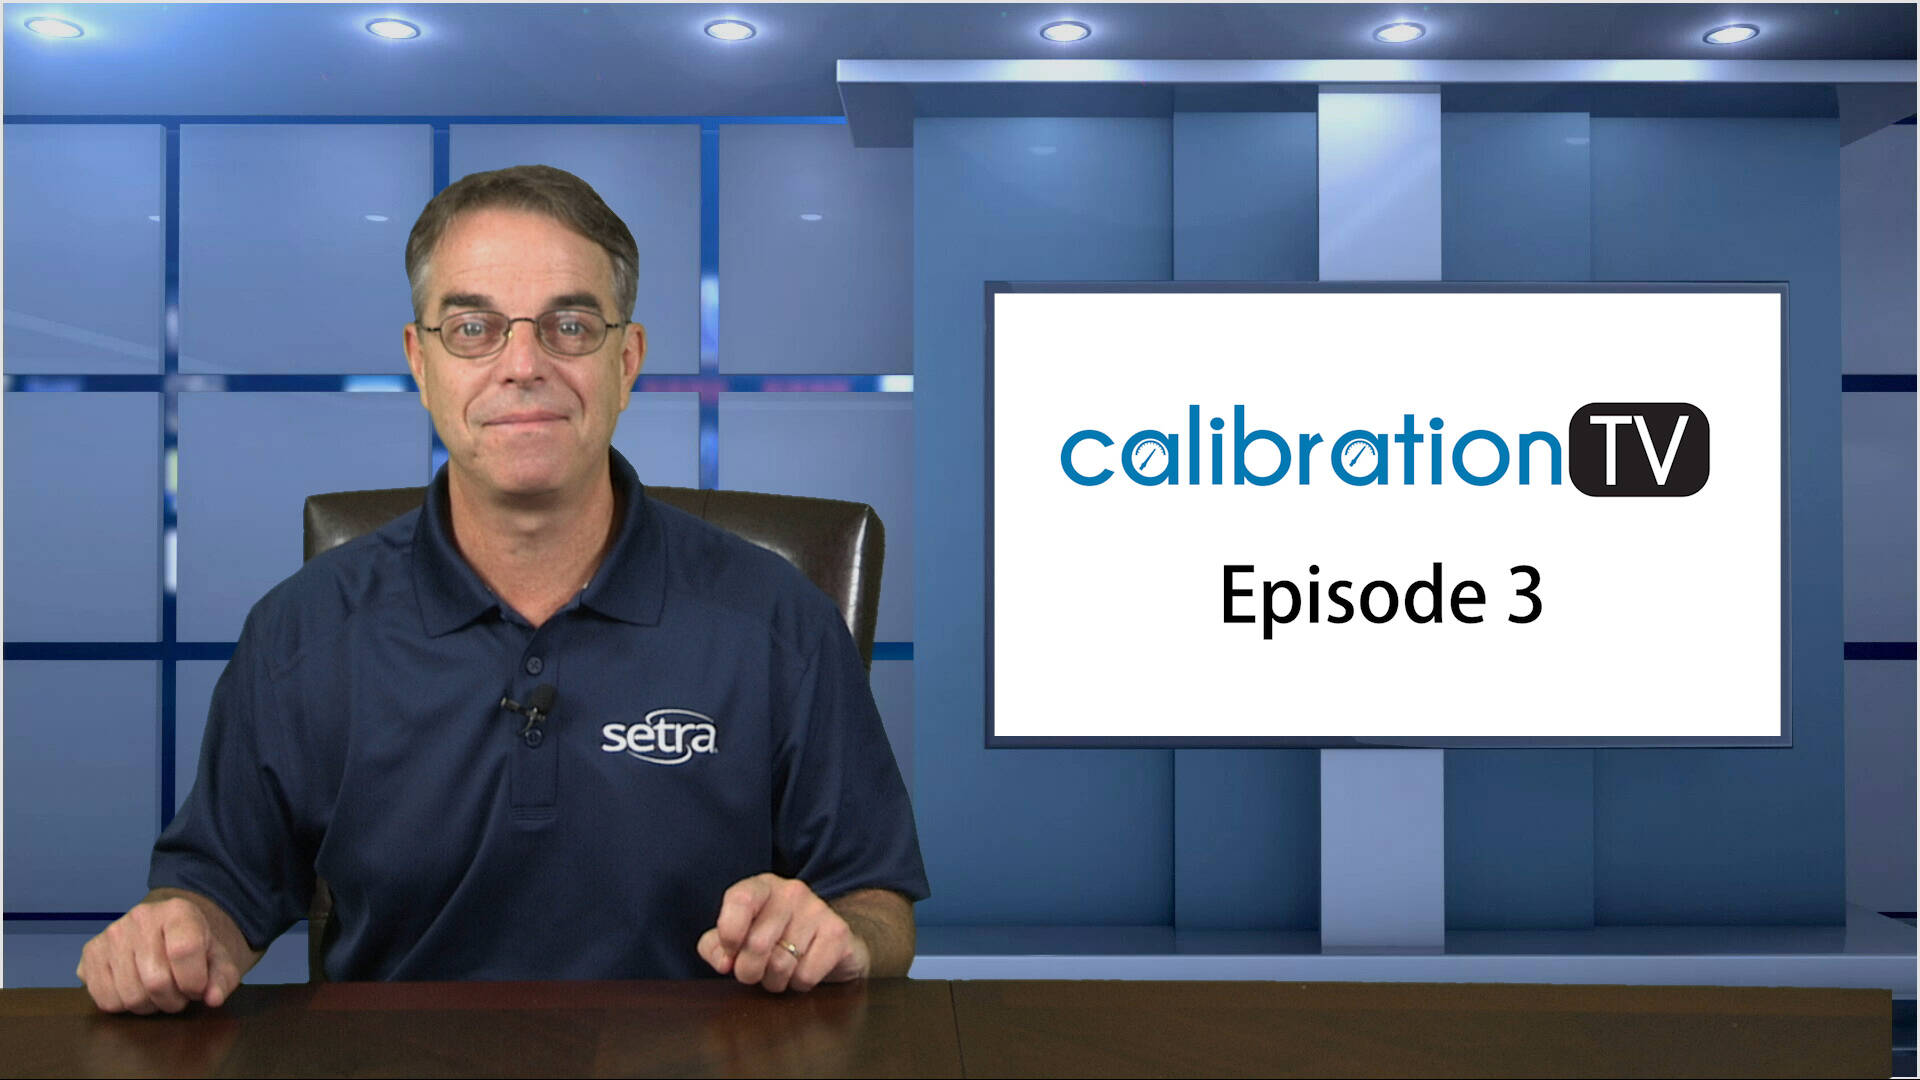 Calibration TV - Episode 3 - Hall Associates